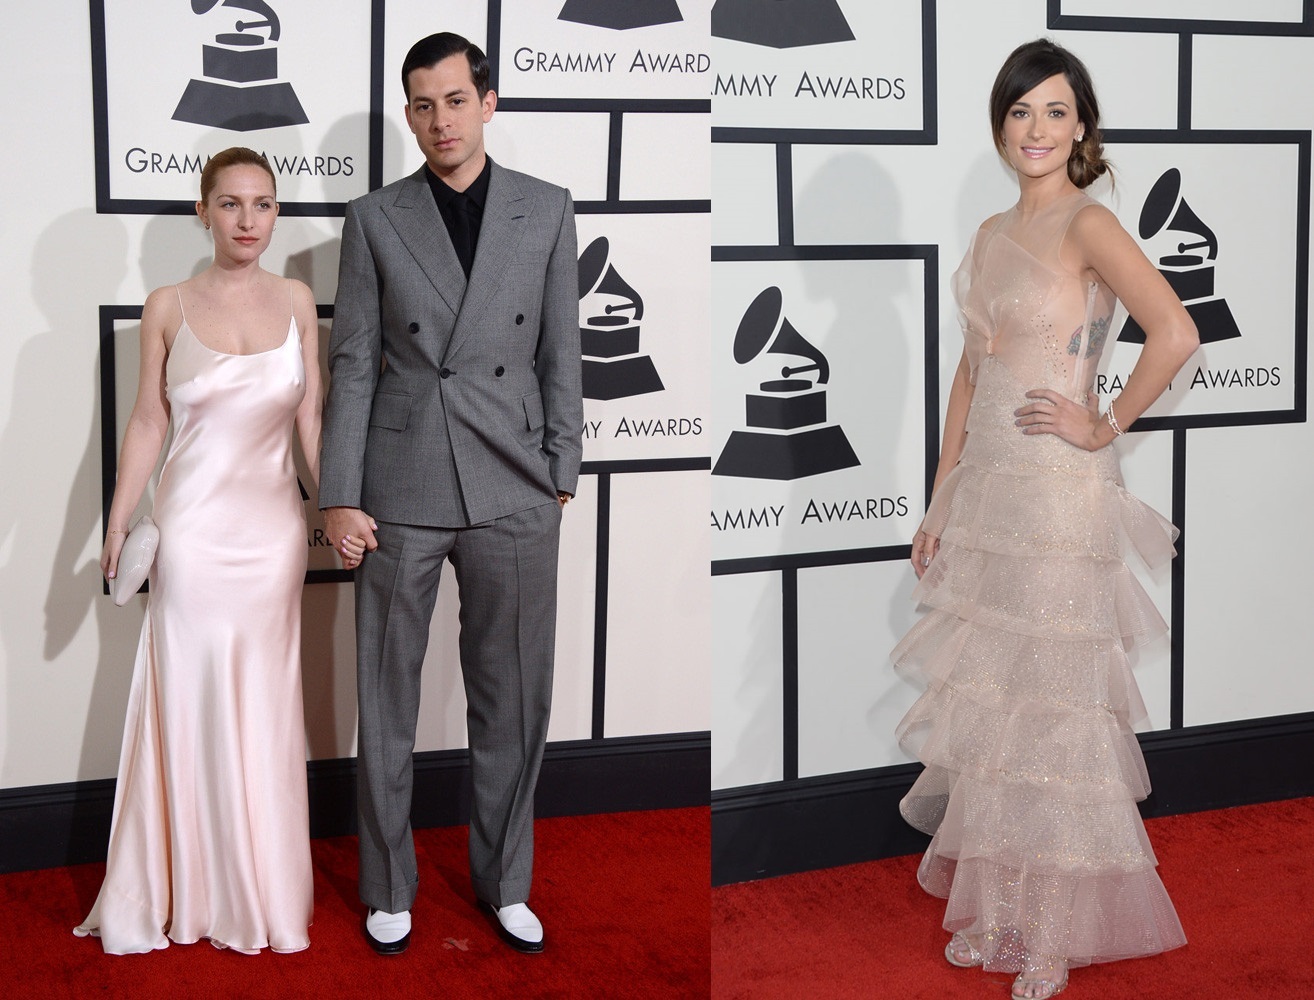 Pastel Outfits at the Grammy Awards 2014